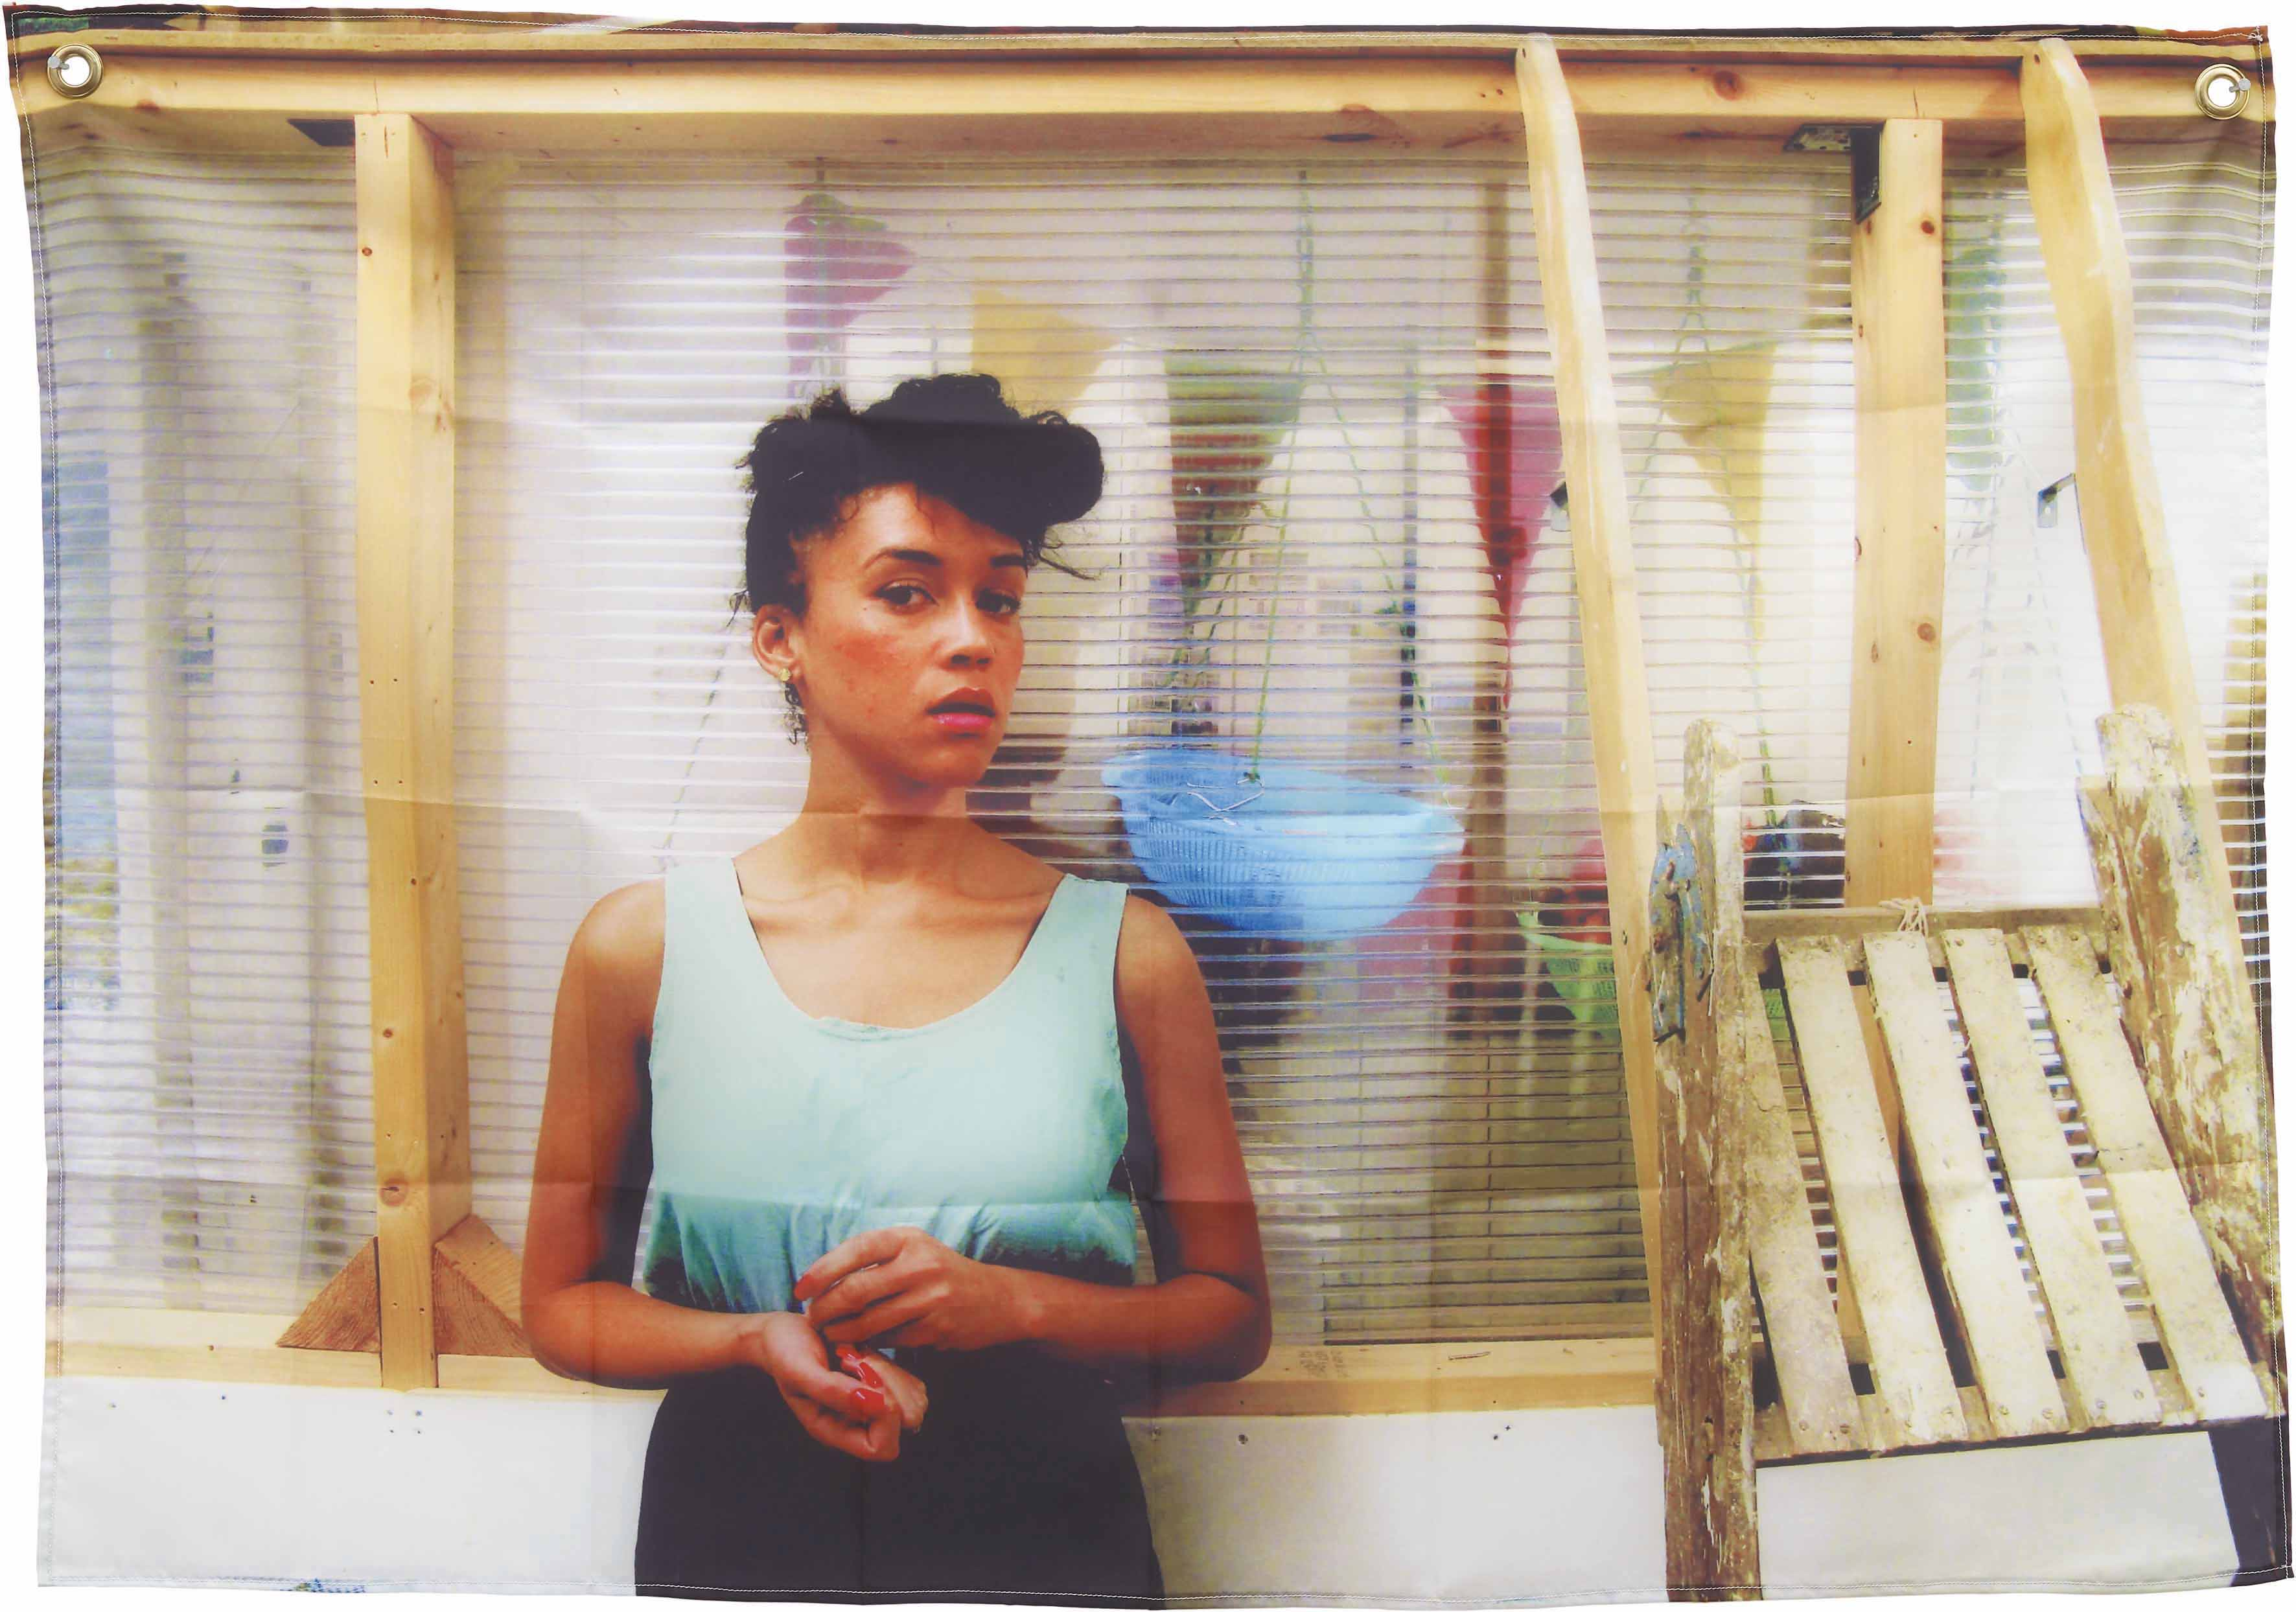 Jennifer Bailey, 'Danielle in the Studio (from New Girls)', (2011). Image courtesy of ICA.